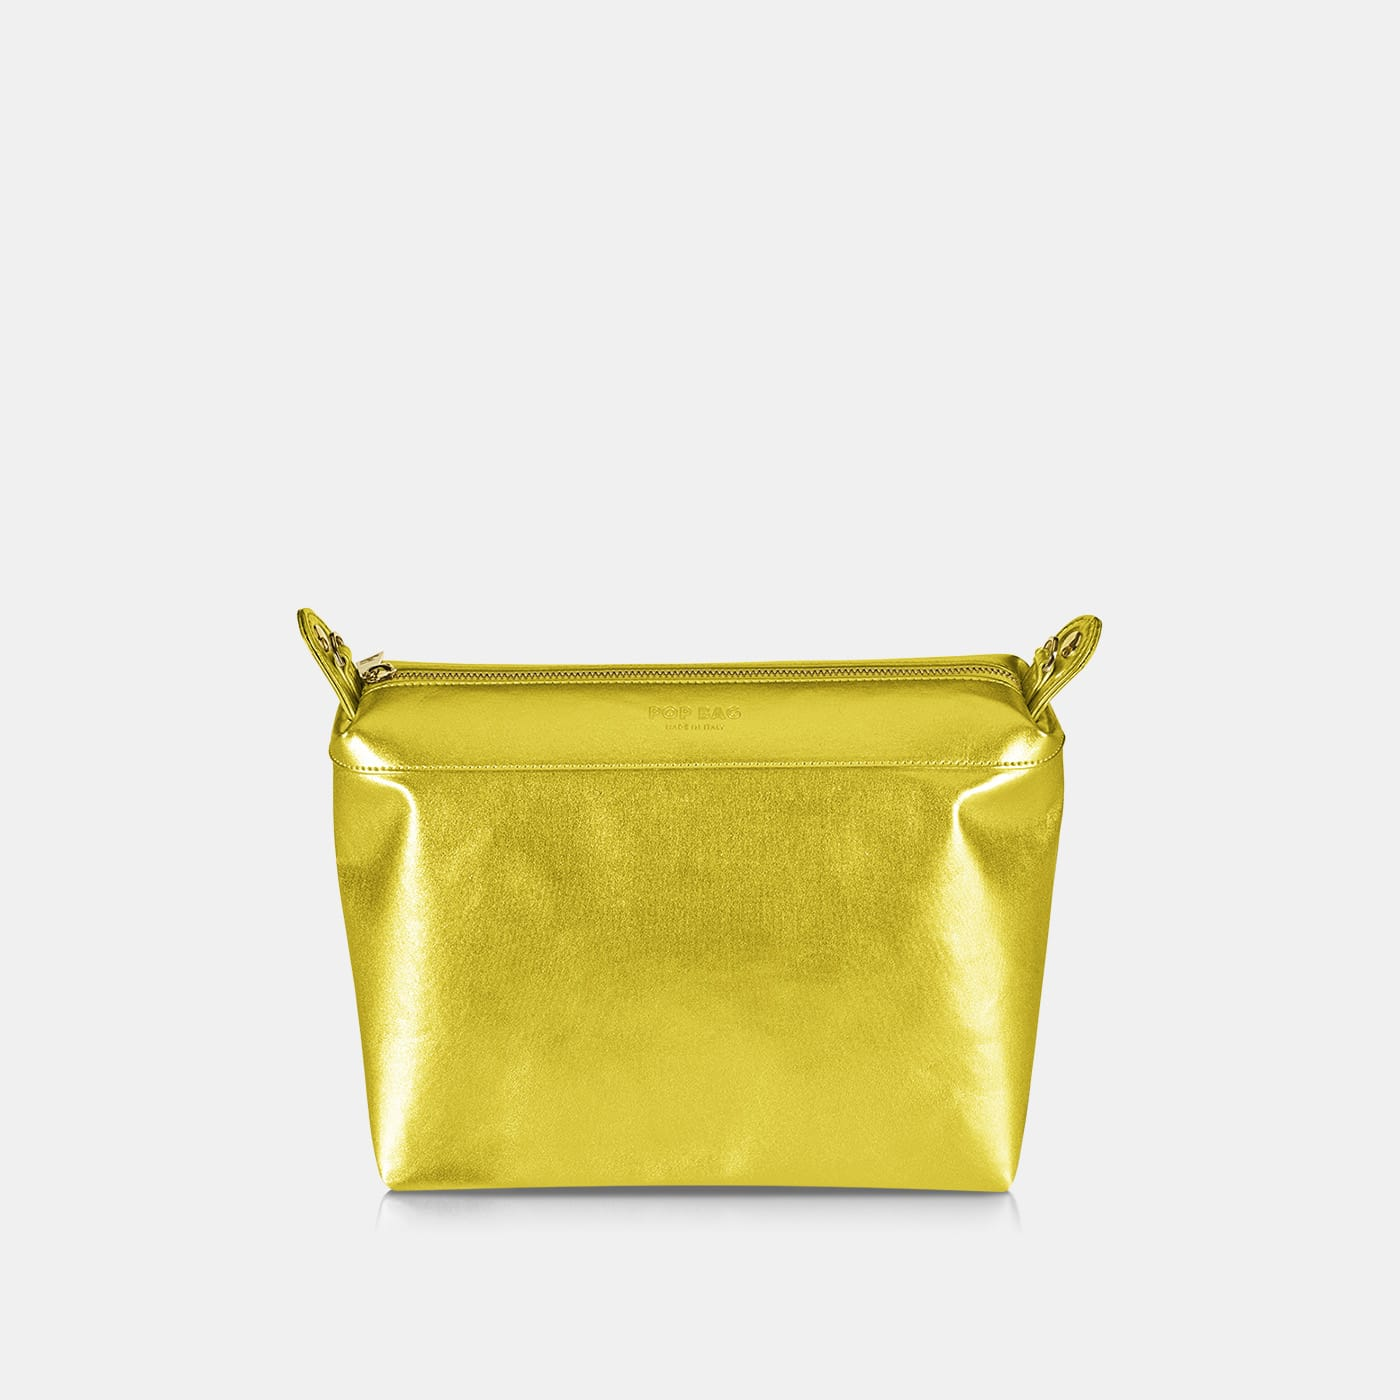 Bag In Bag - Metallic - Lemon Metal - Small